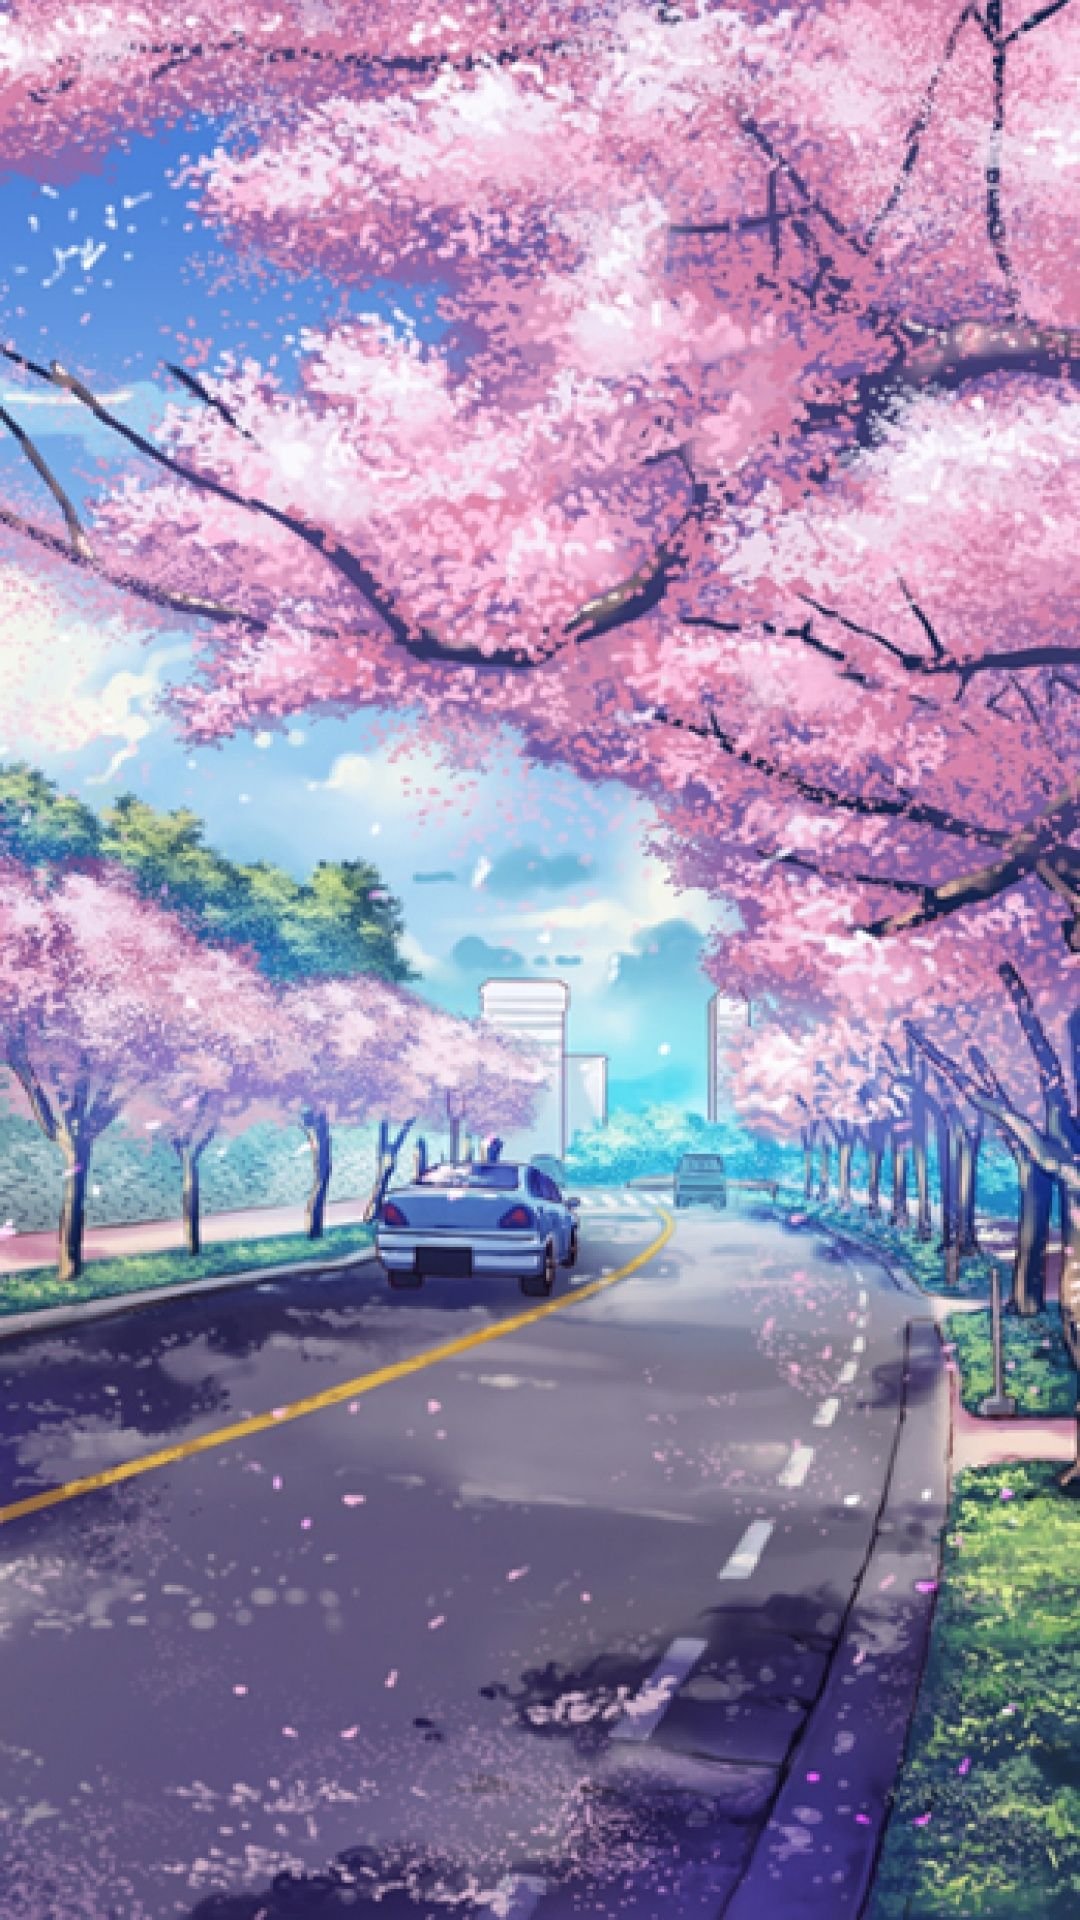 1680x1050 Anime Background Scenery Wallpaper For Desktop 272